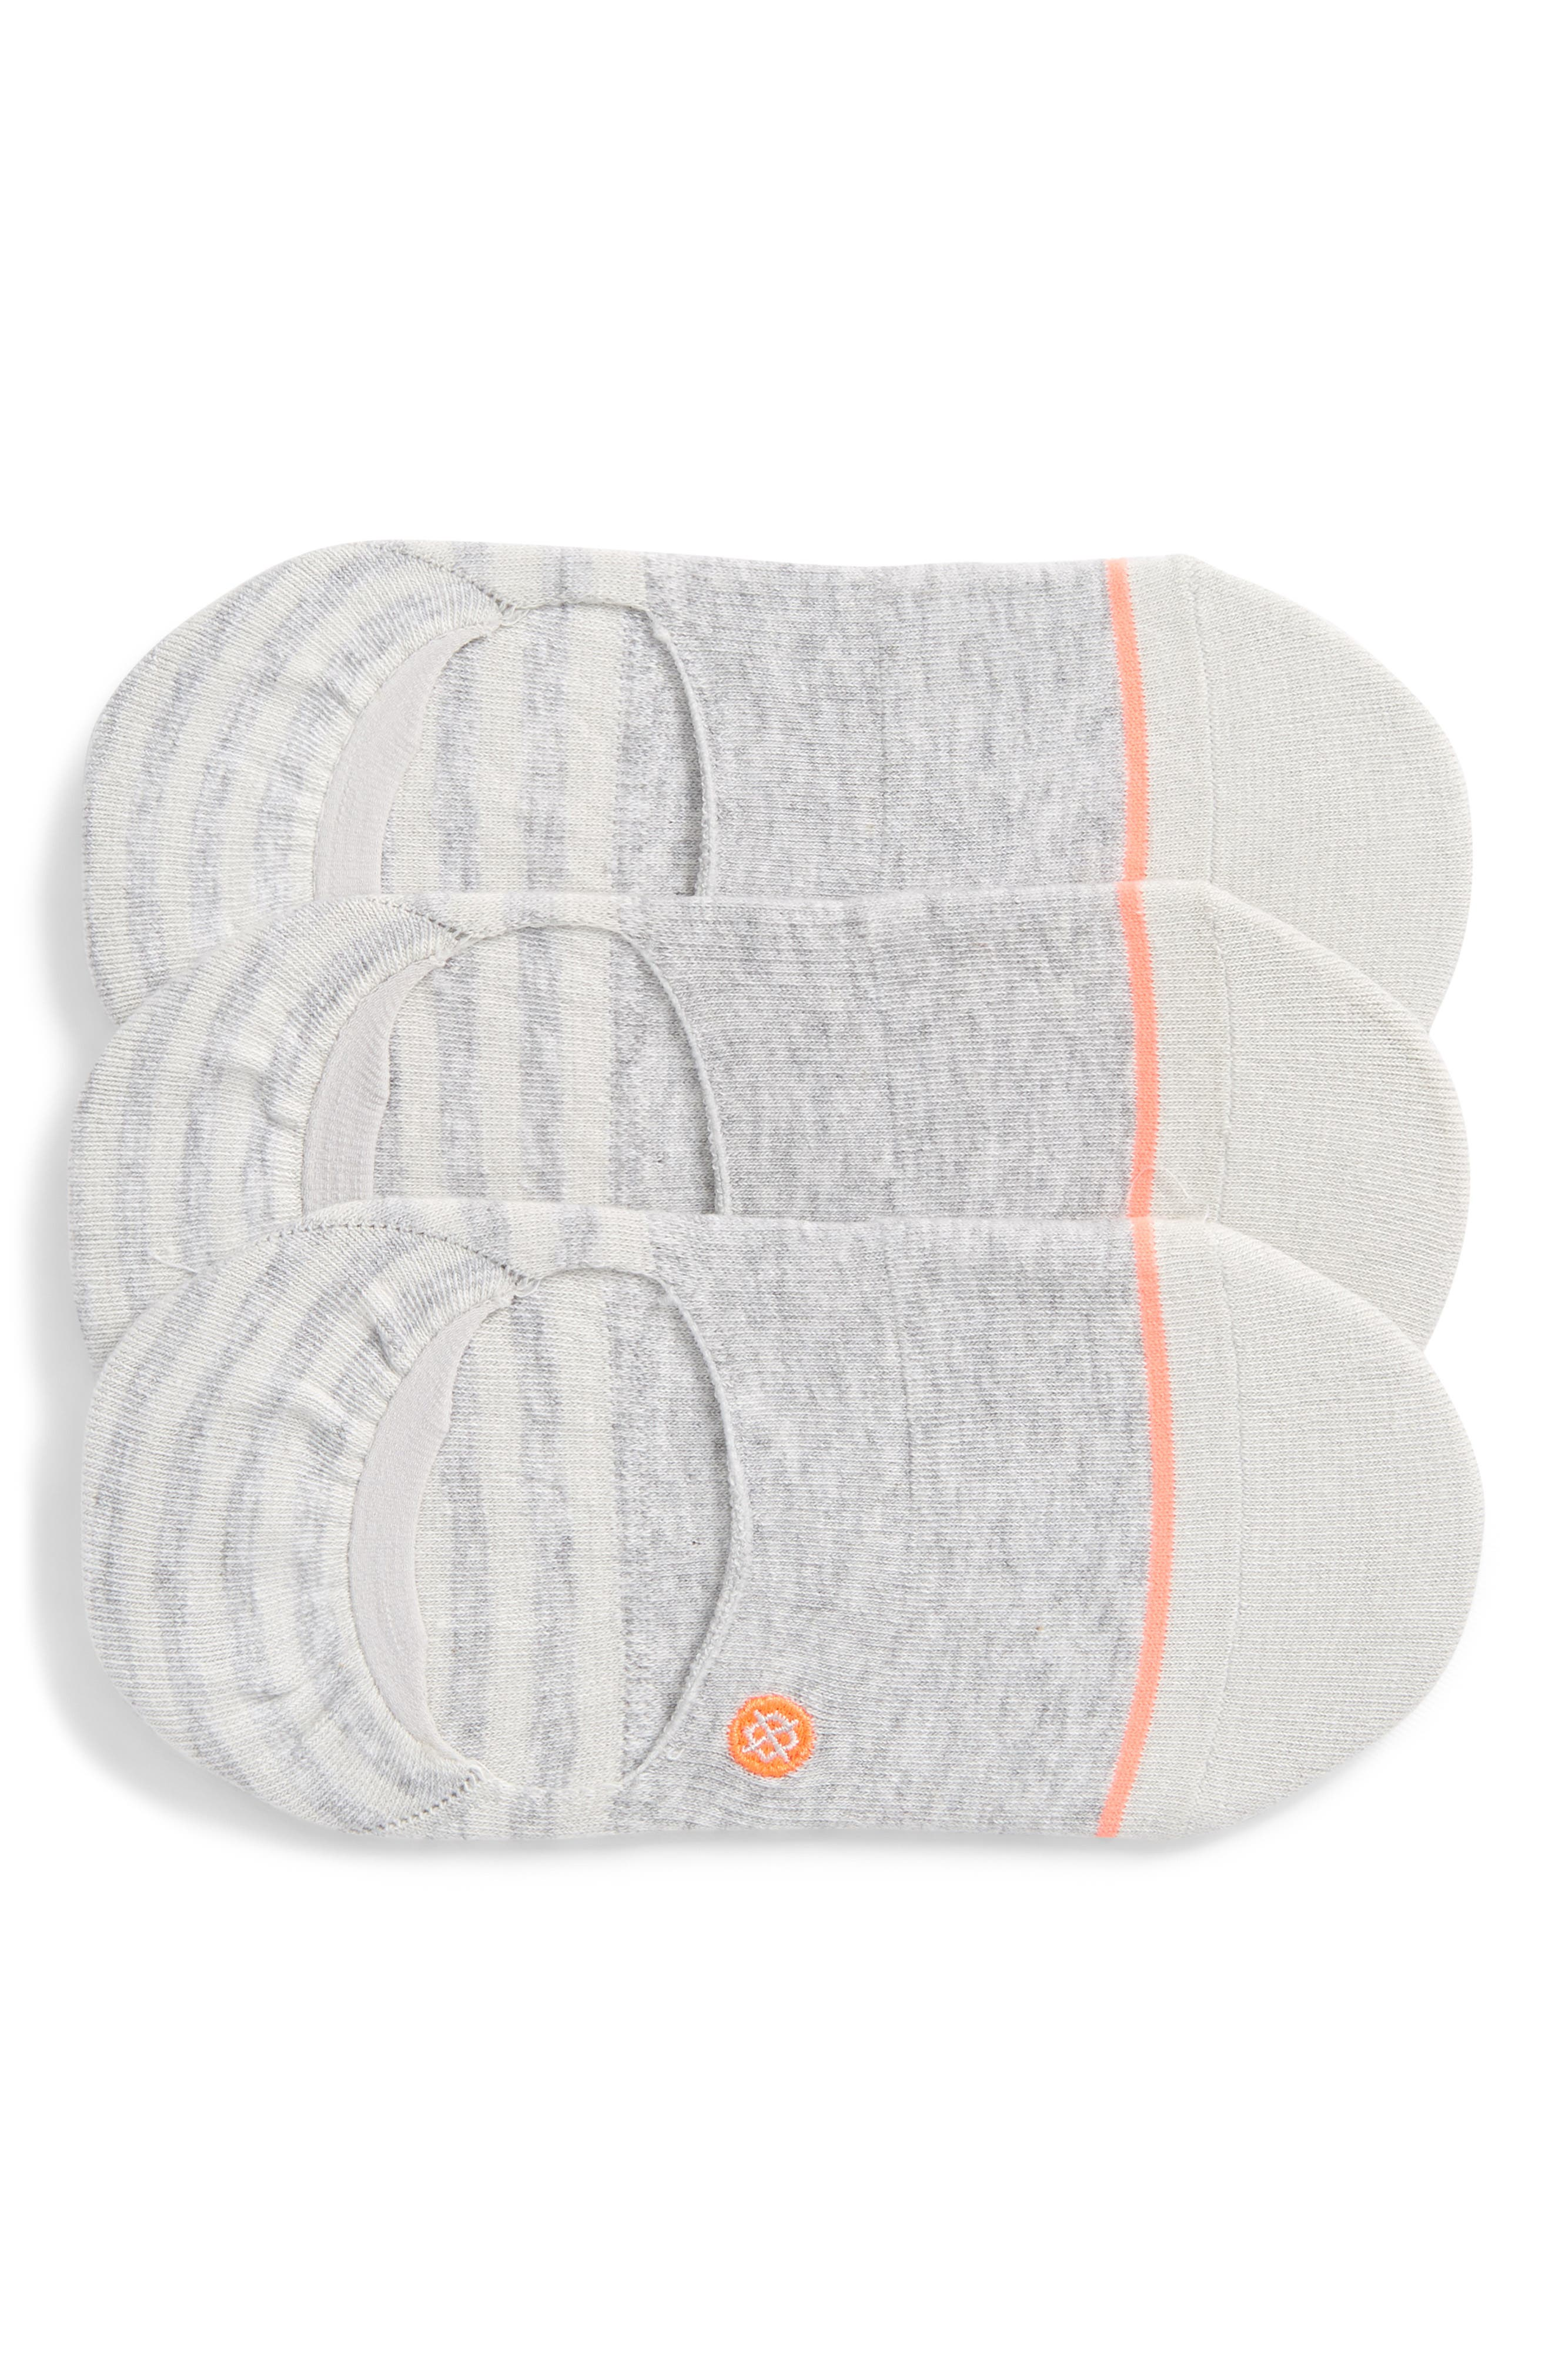 STANCE Invisible Liner Socks, Set Of 3 in Grey